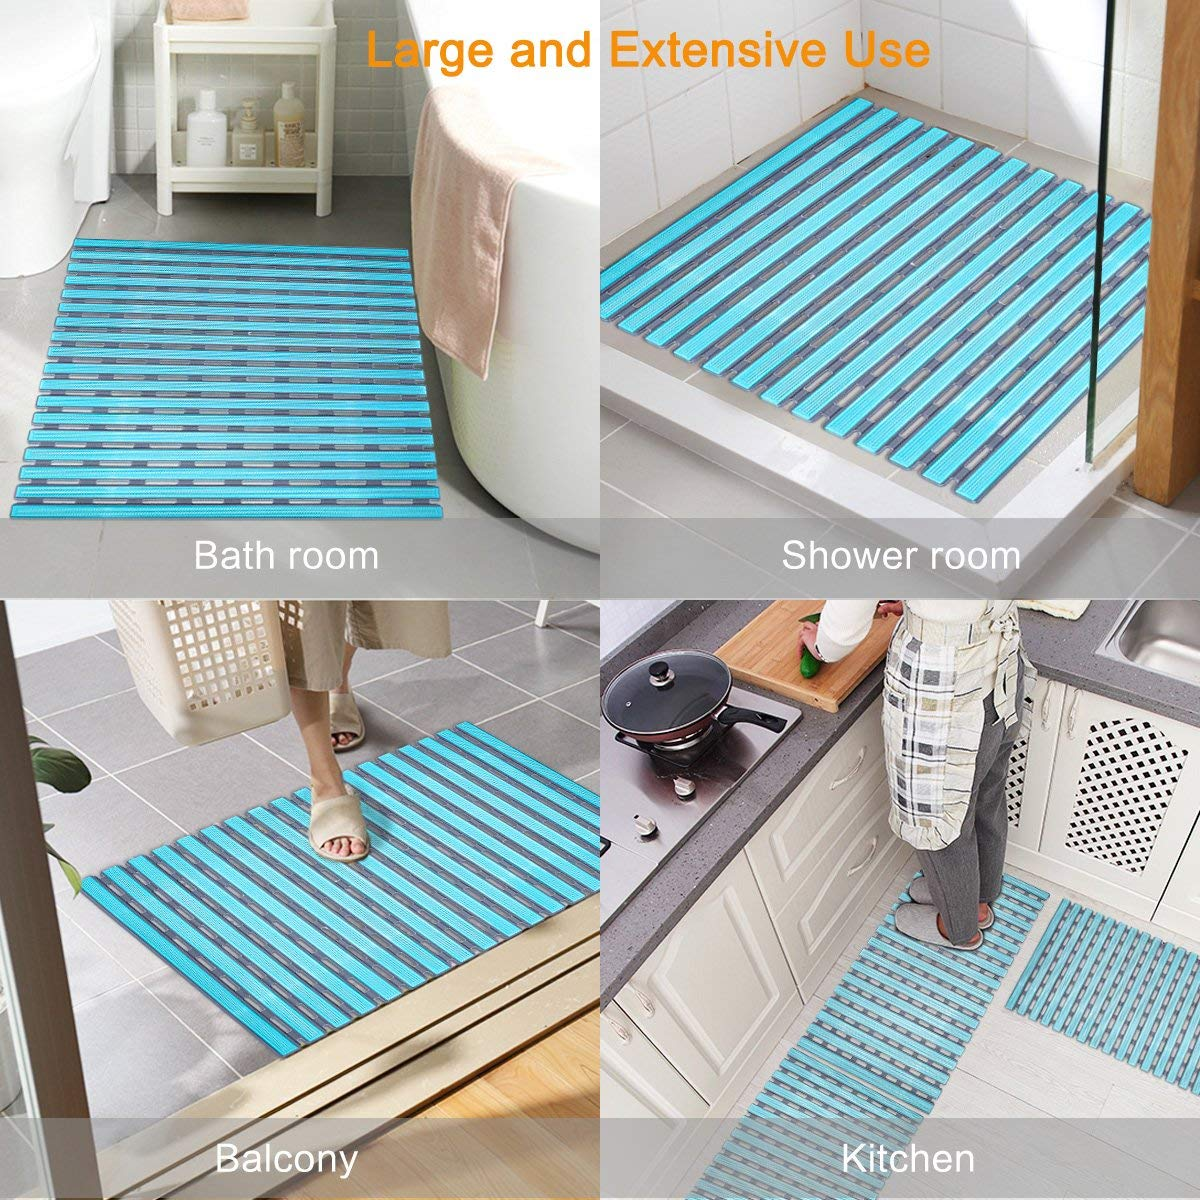 Reasonable Professional Non Slip Bath Mat With Suction Cups Bathroom Kitchen Door Floor Tub Shower Safety Mats Anti-bacteria Bath Mat Wide Selection; Bathroom Products Home & Garden